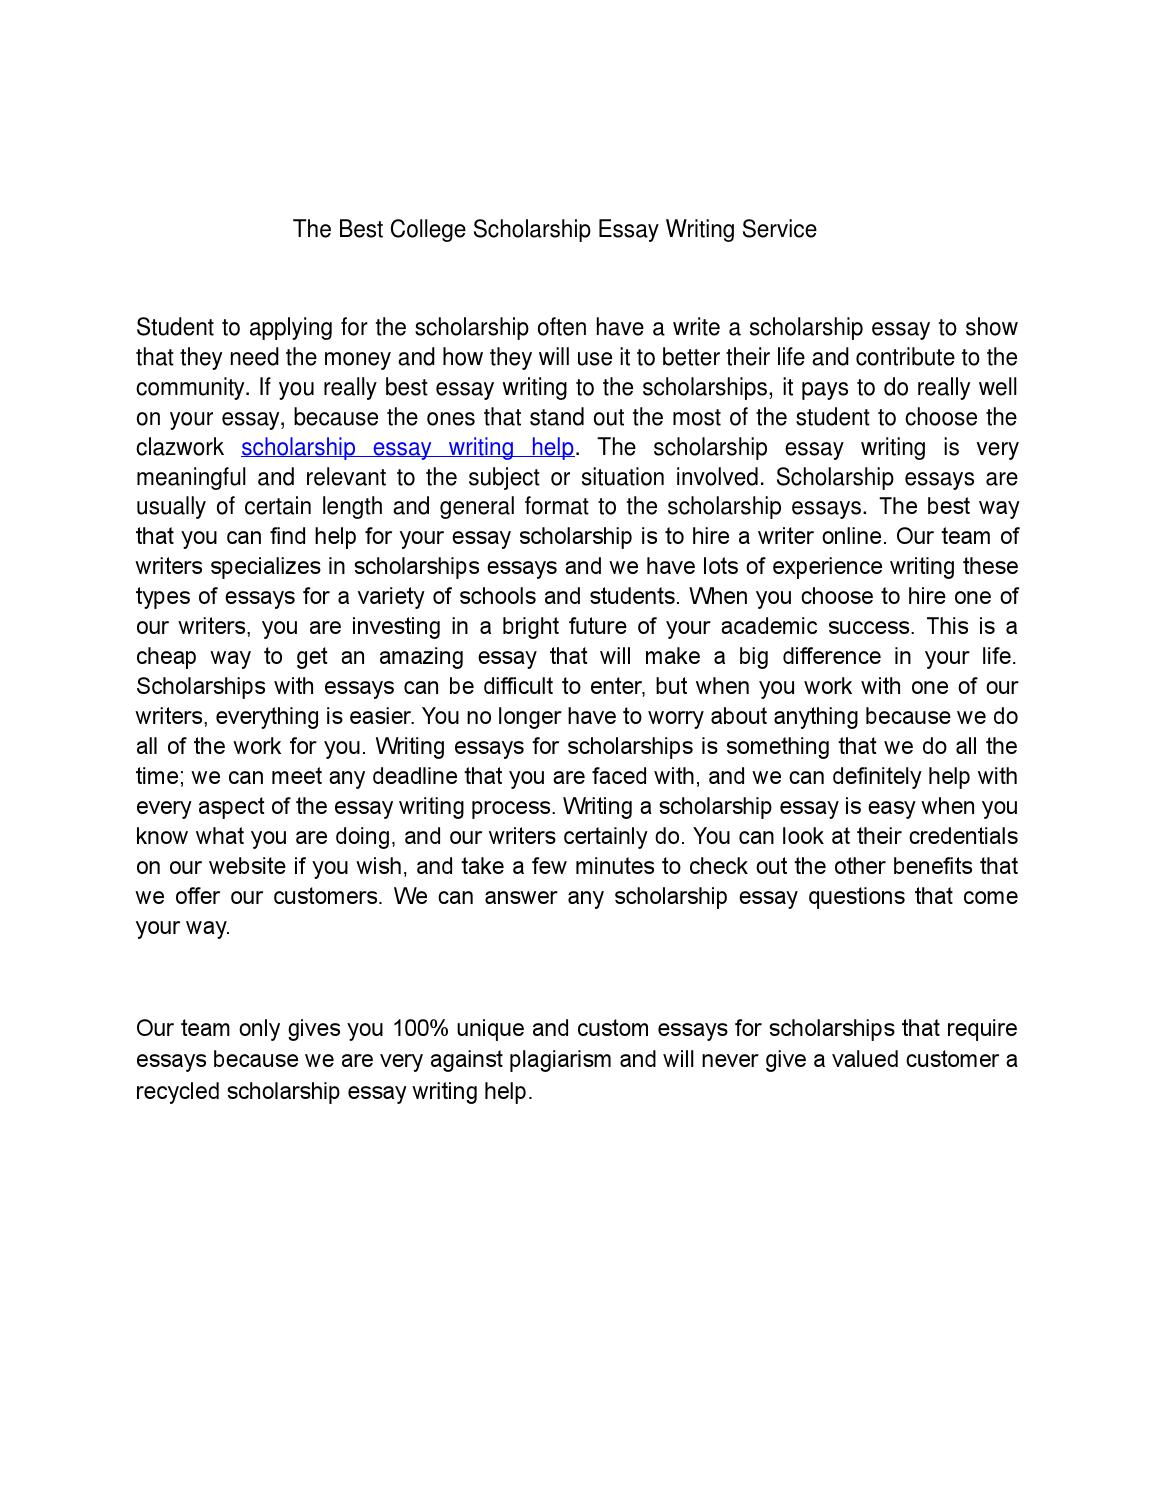 The best college essay